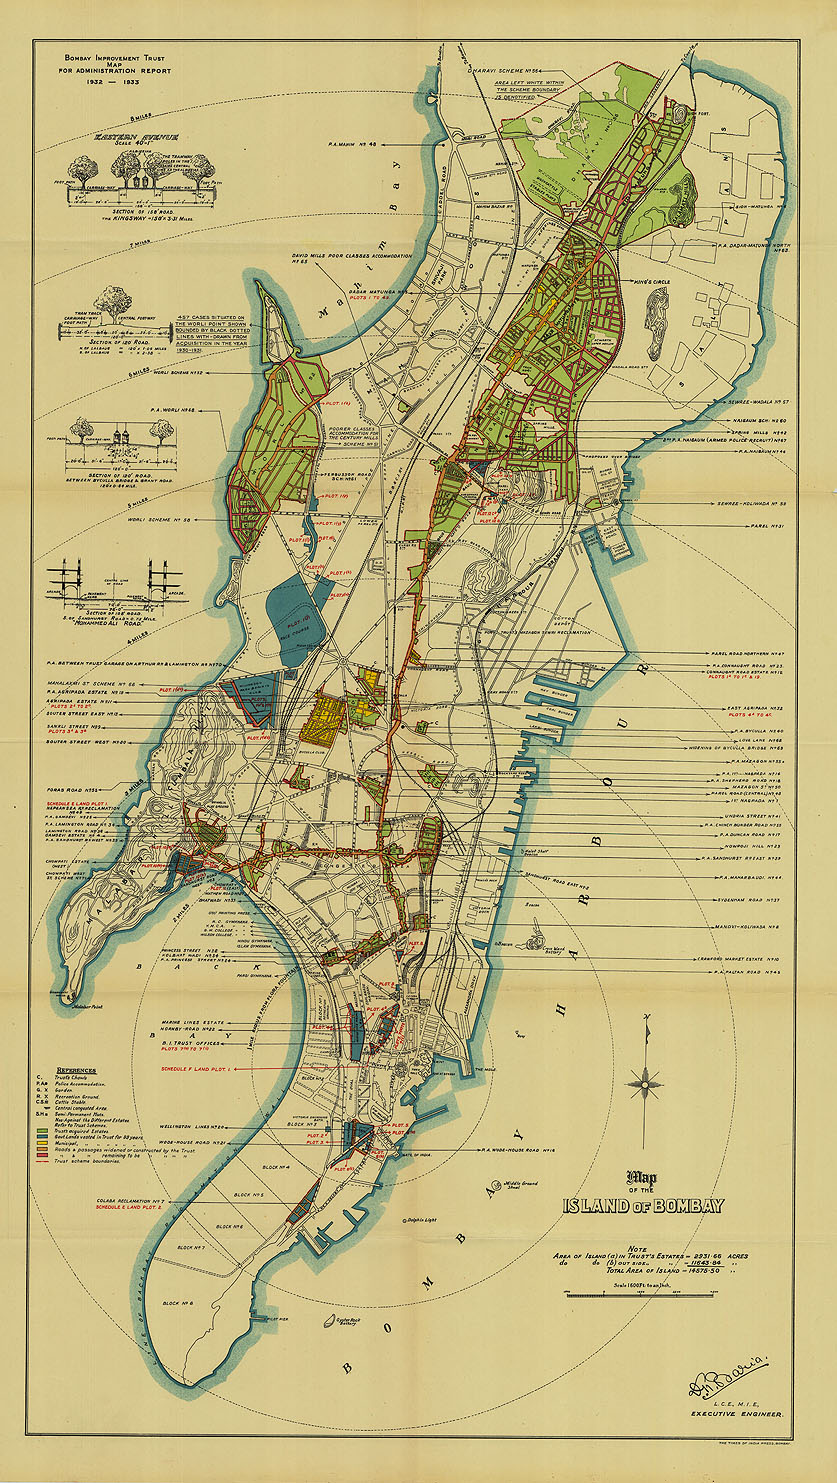 Old maps online an insight into maps of the world through history the island of bombay circa 1932 33 gumiabroncs Image collections